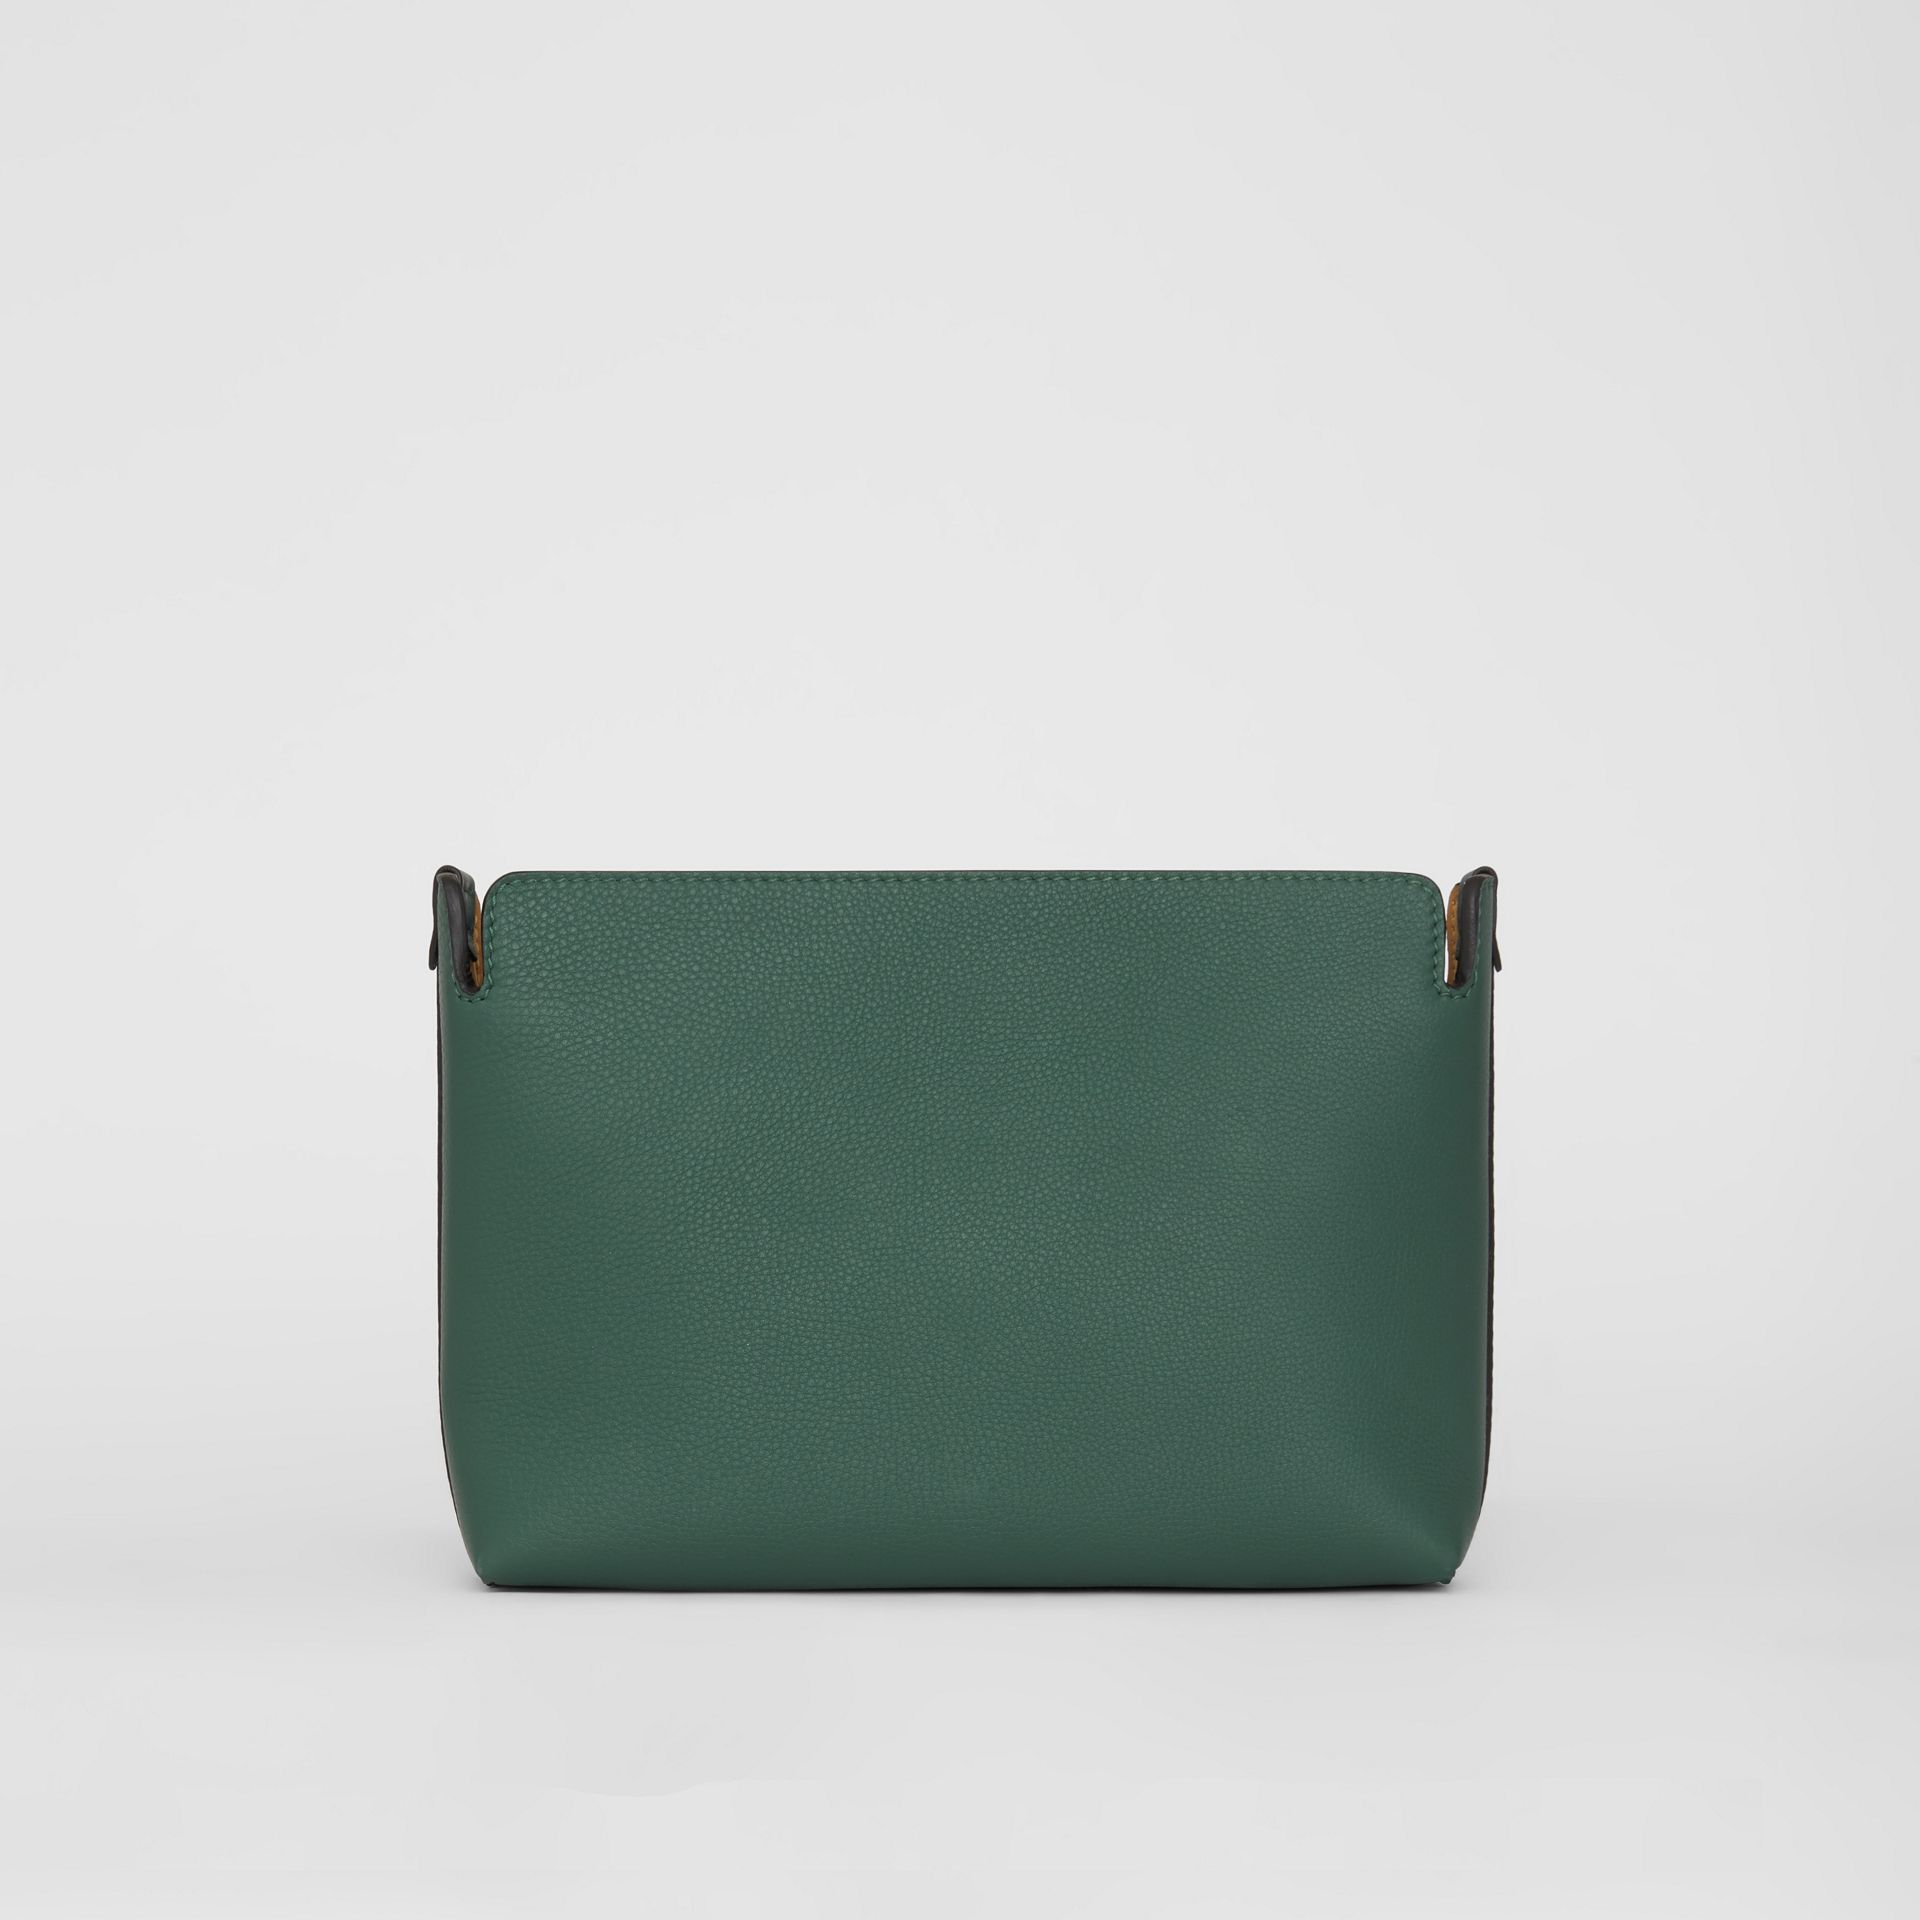 Medium Tri-tone Leather Clutch in Black/sea Green | Burberry United Kingdom - gallery image 7